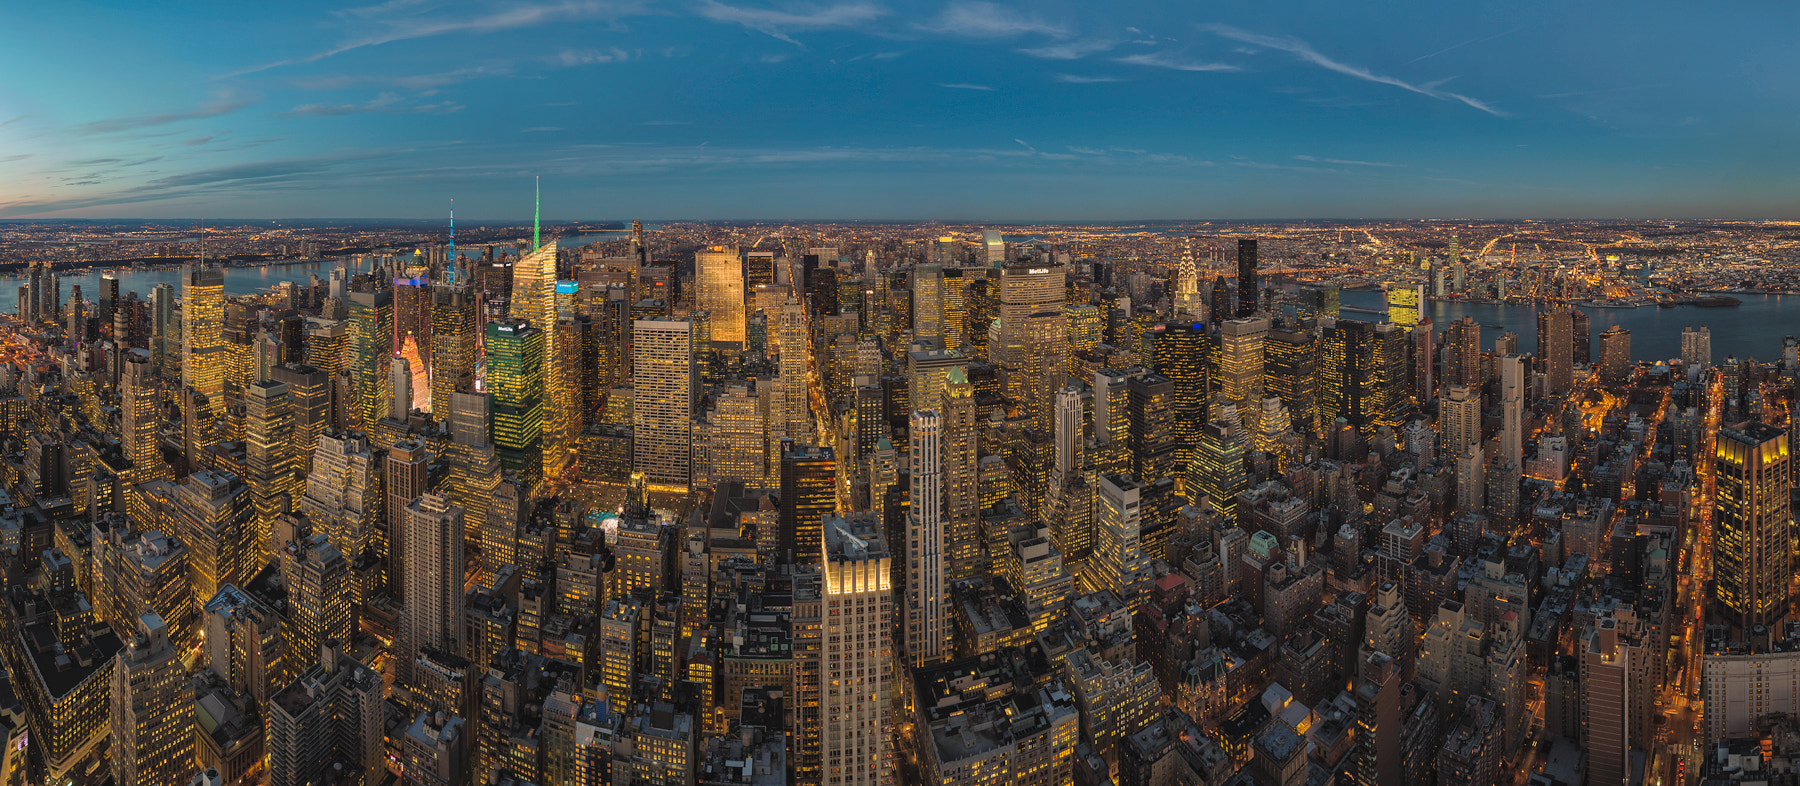 Photograph Midtown by Oleg Ershov on 500px